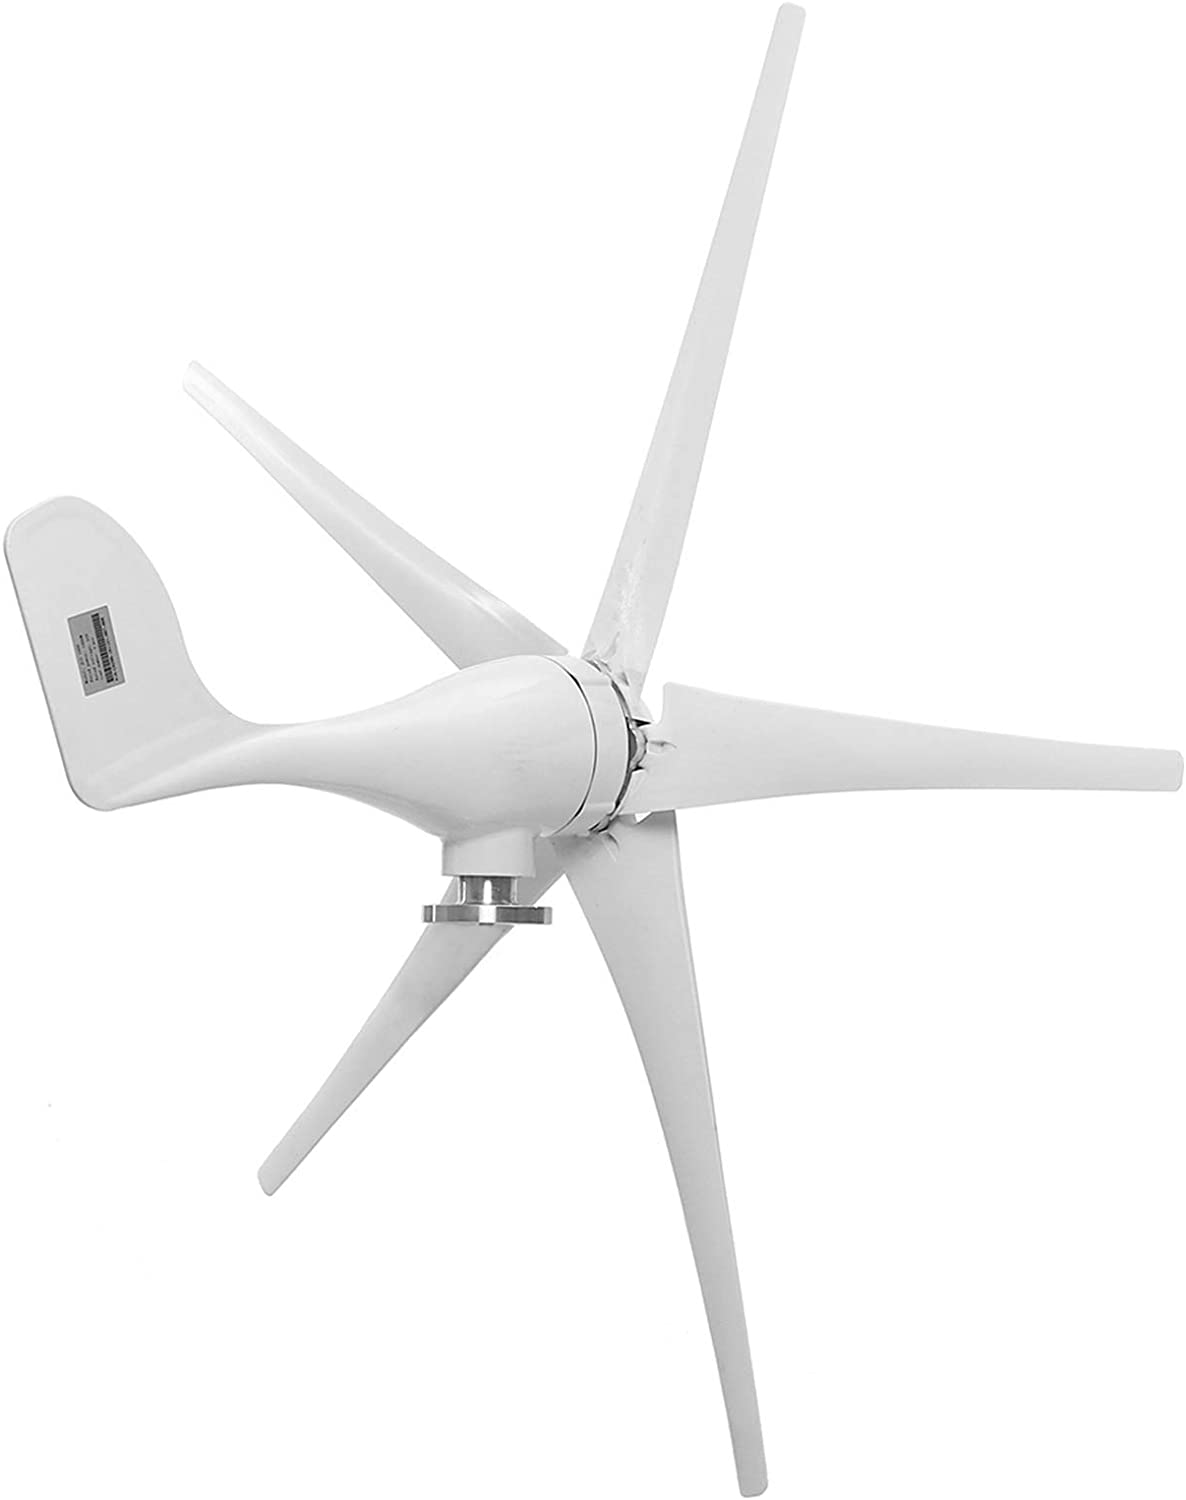 8000W Wind Power Turbines Generator, 5 Wind Blades Option with Waterproof Charge Controller Fit for Home Or Camping 12/24/48V,12v